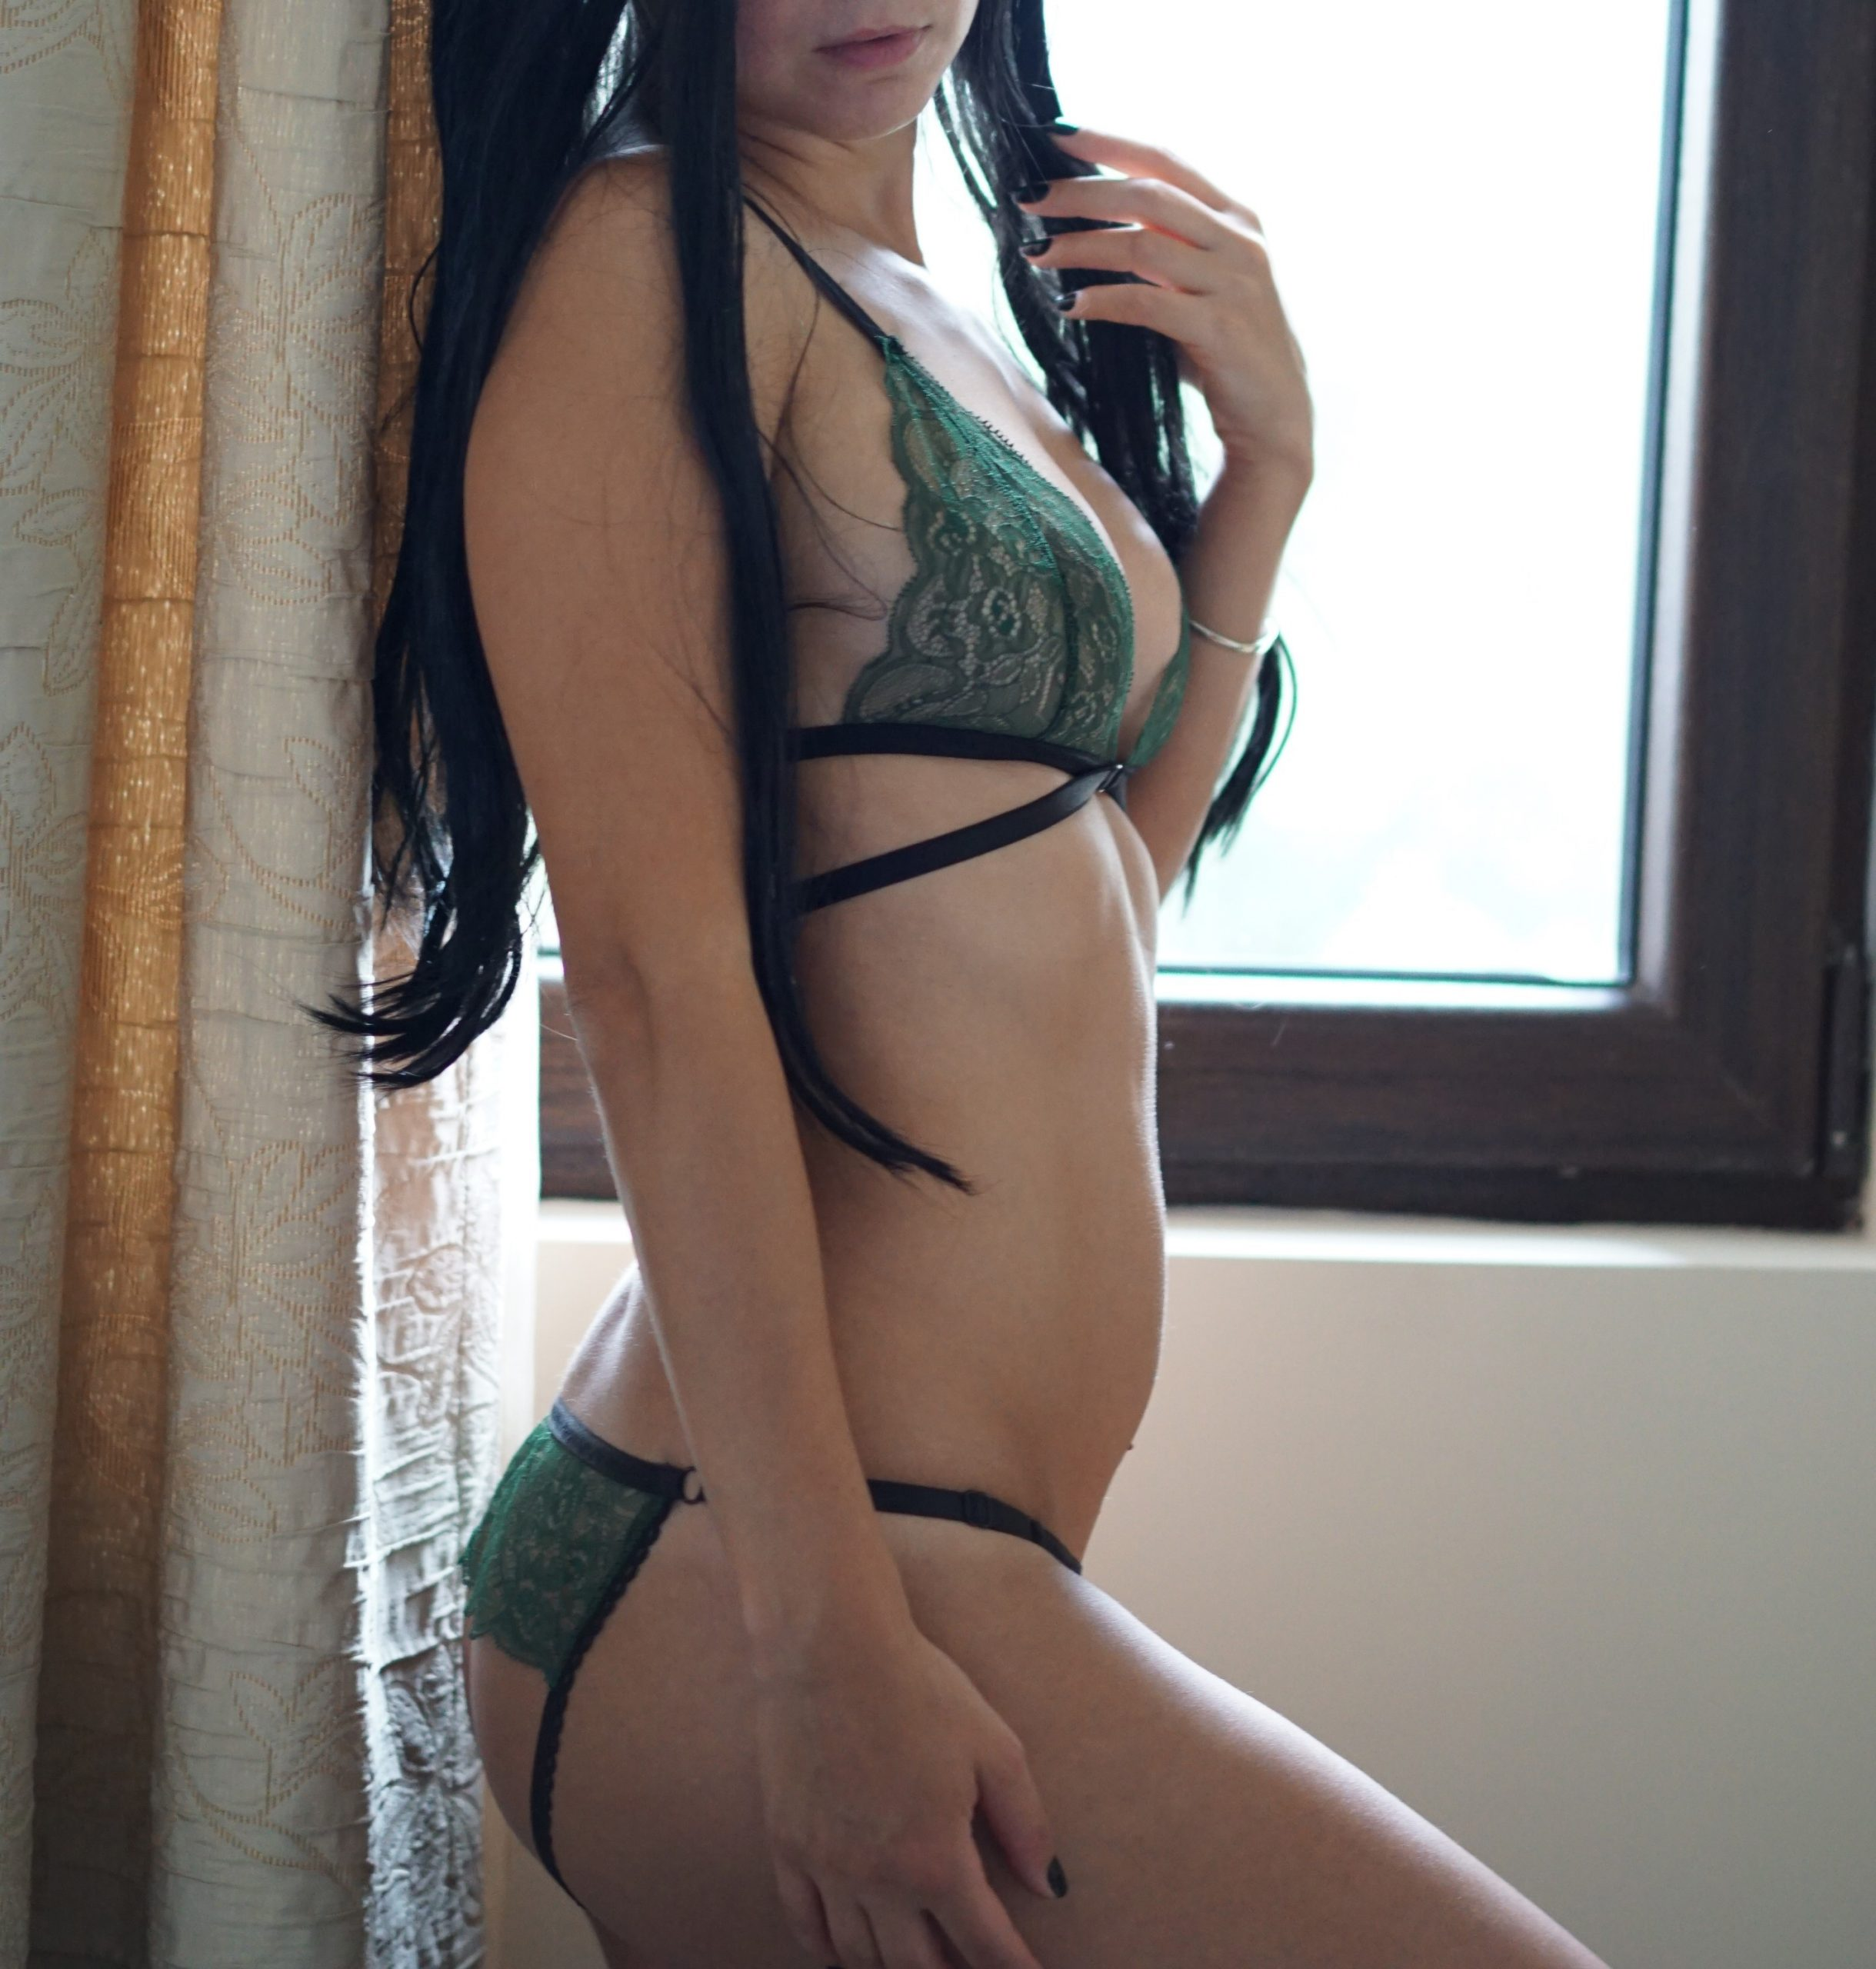 BlackWings Lingerie - Deep Green Strappy Ouvert Panties; Crotchless; Bottomless; Sexy Underwear; Green Lingerie Set